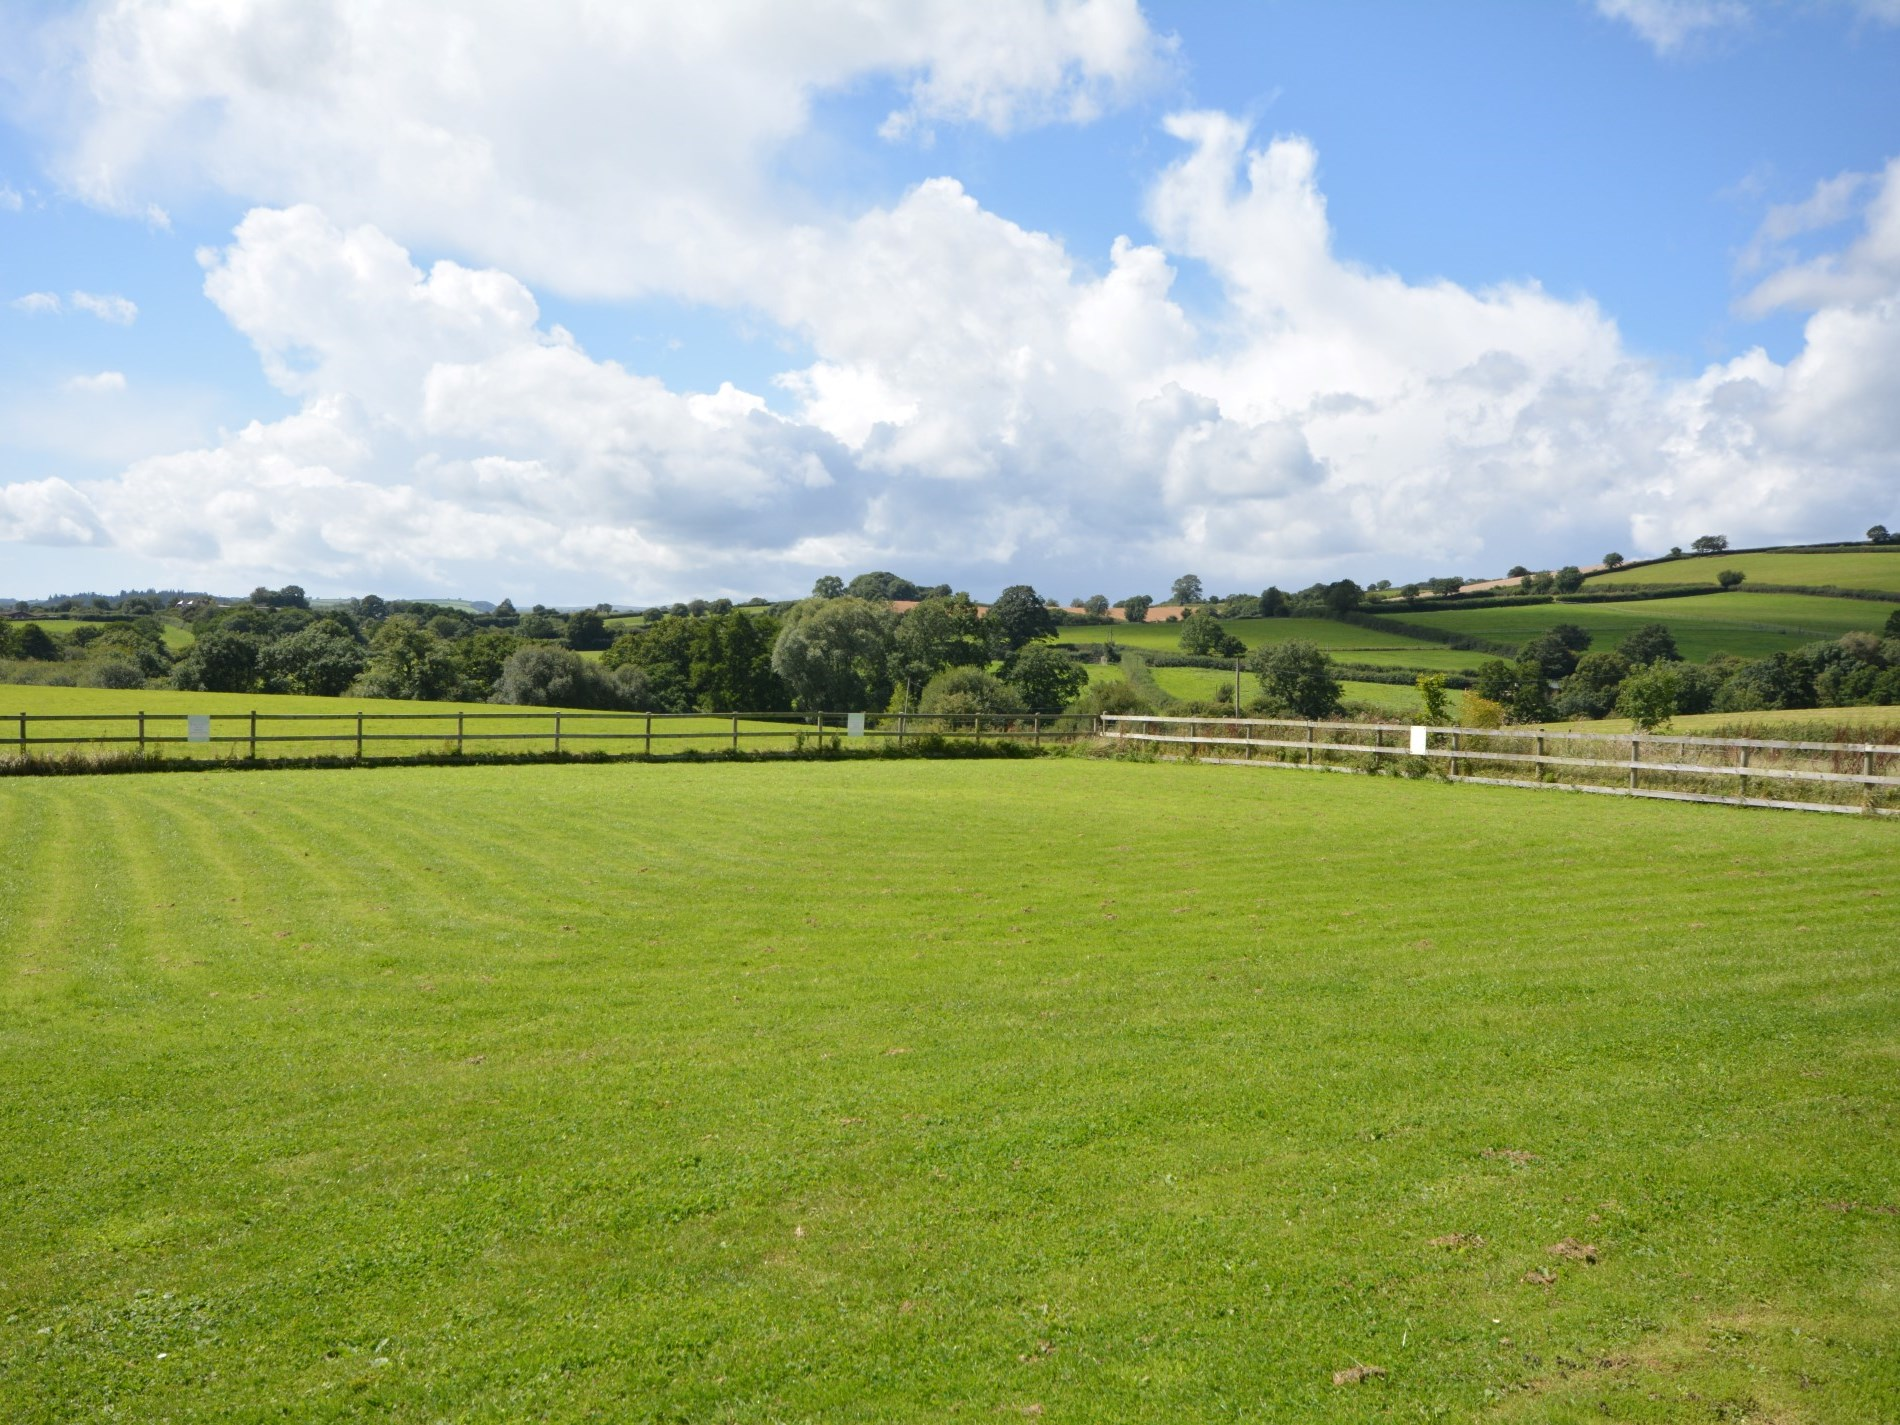 Fantastic countyside views across the children's play area